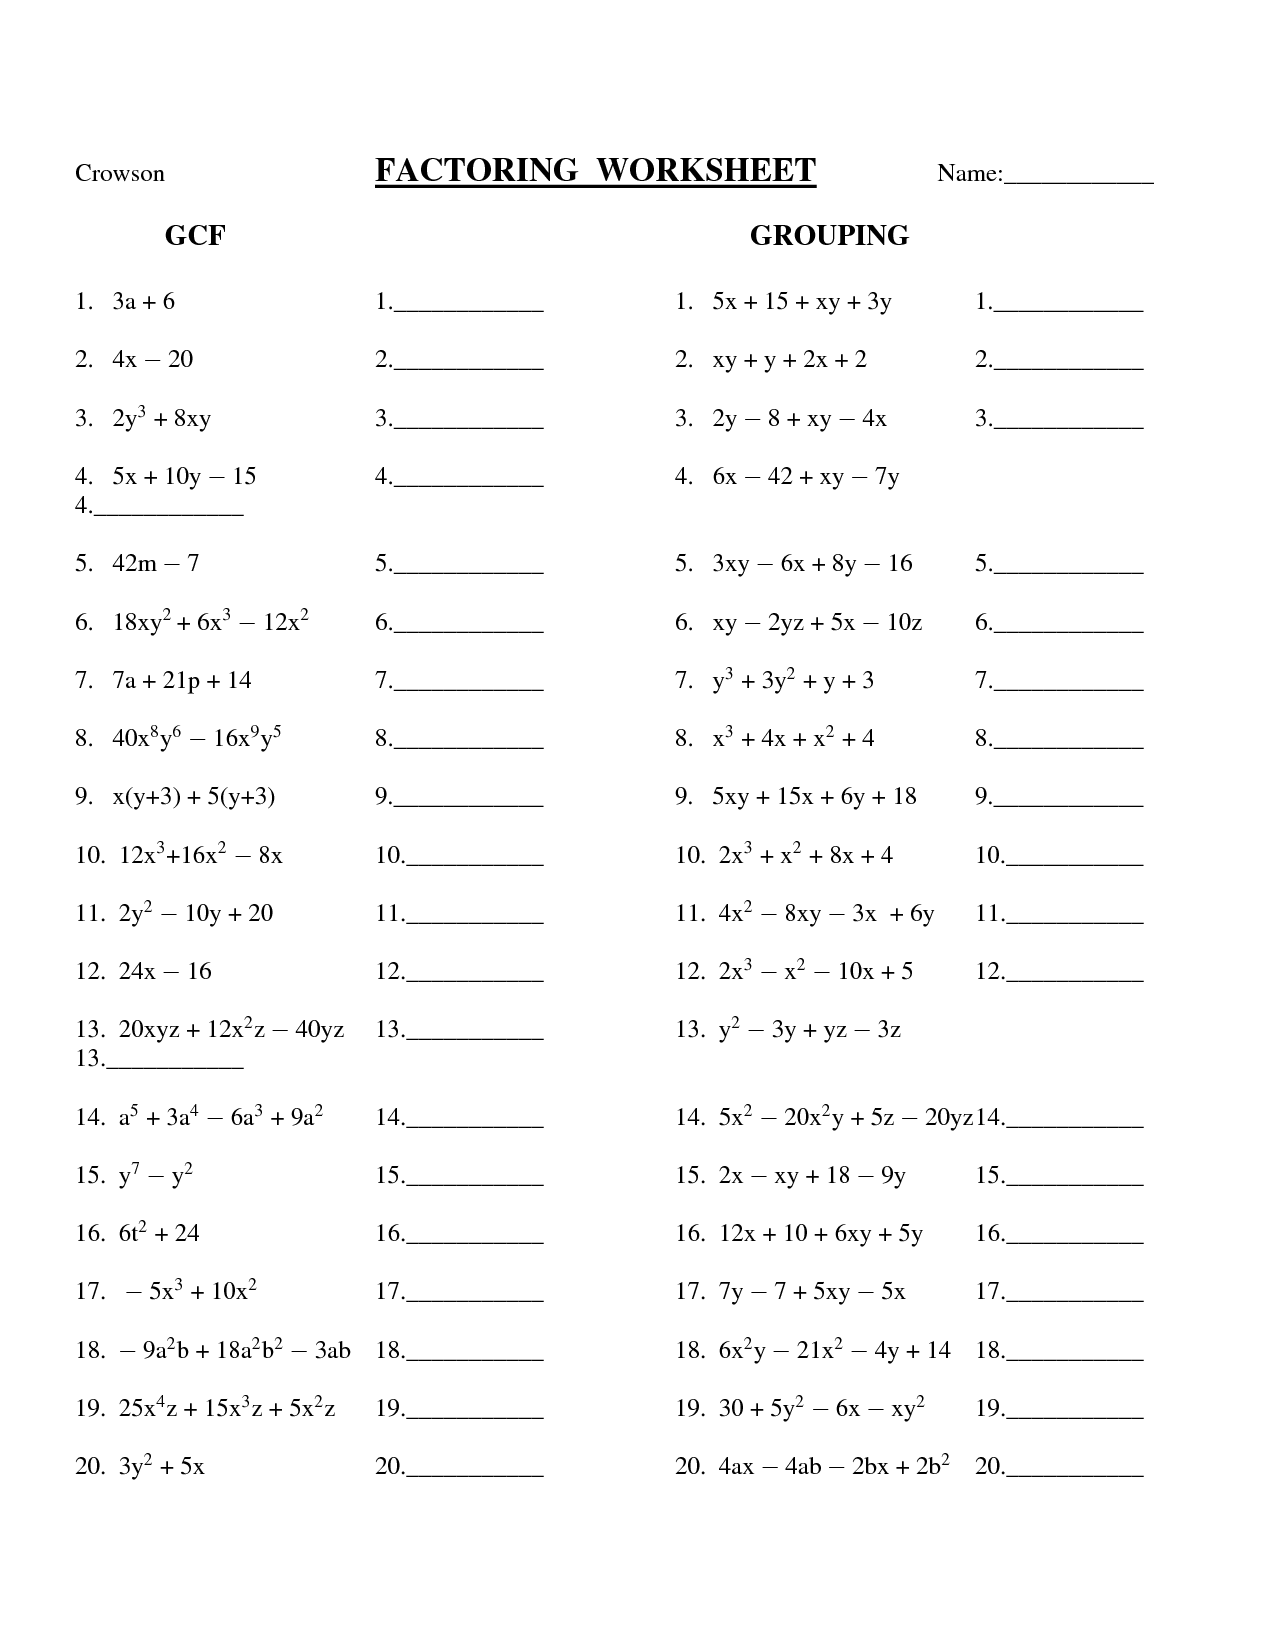 11 Best Images Of Factoring Worksheets With Answers